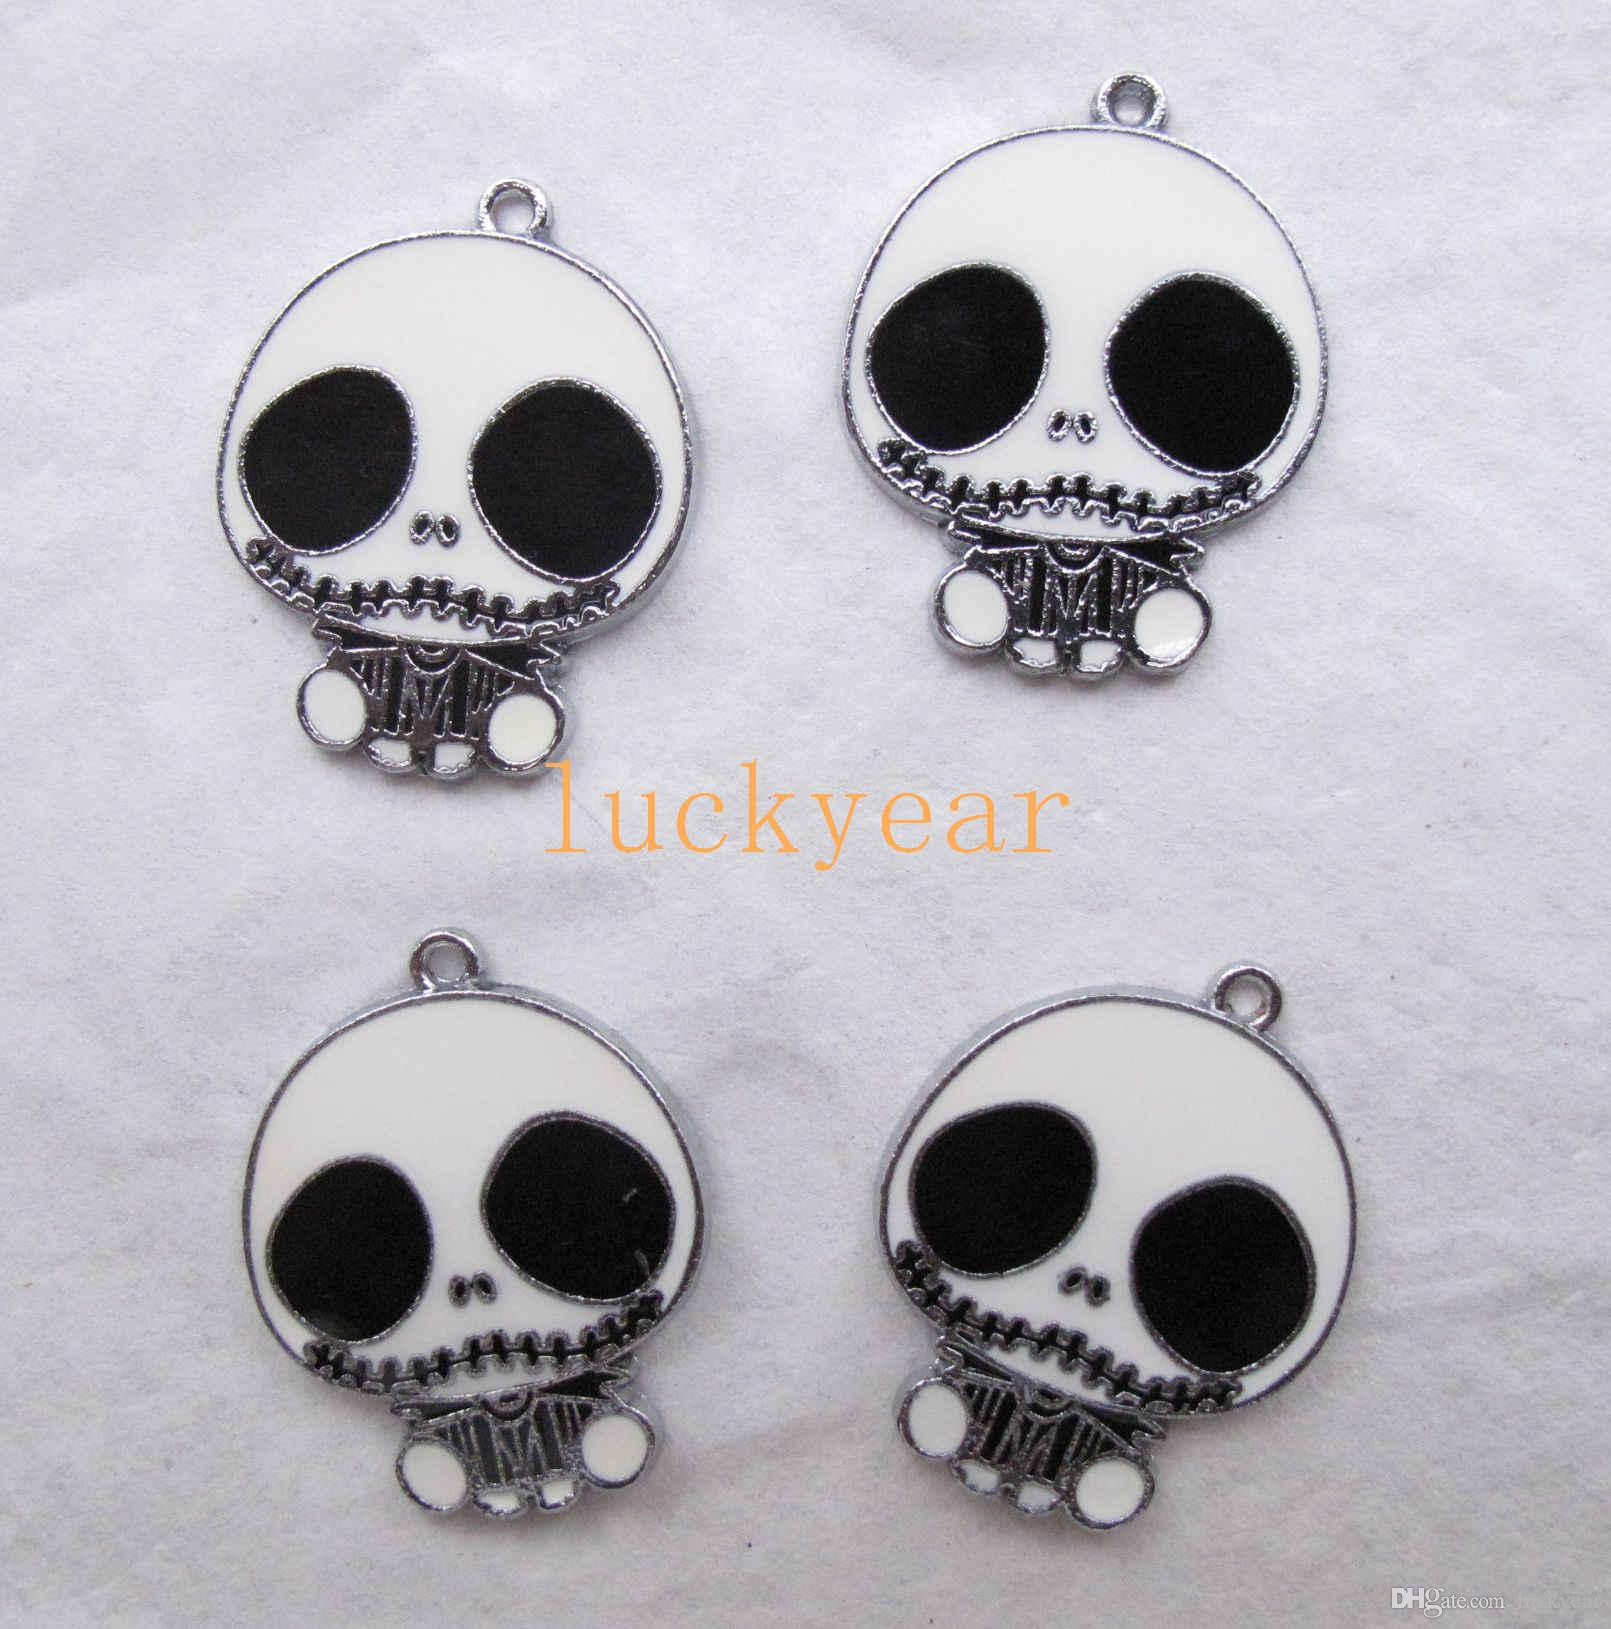 New The Nightmare Before Christmas DIY Jewelry Making Metal Charm Pendant Jewelry Making Party Gifts B69